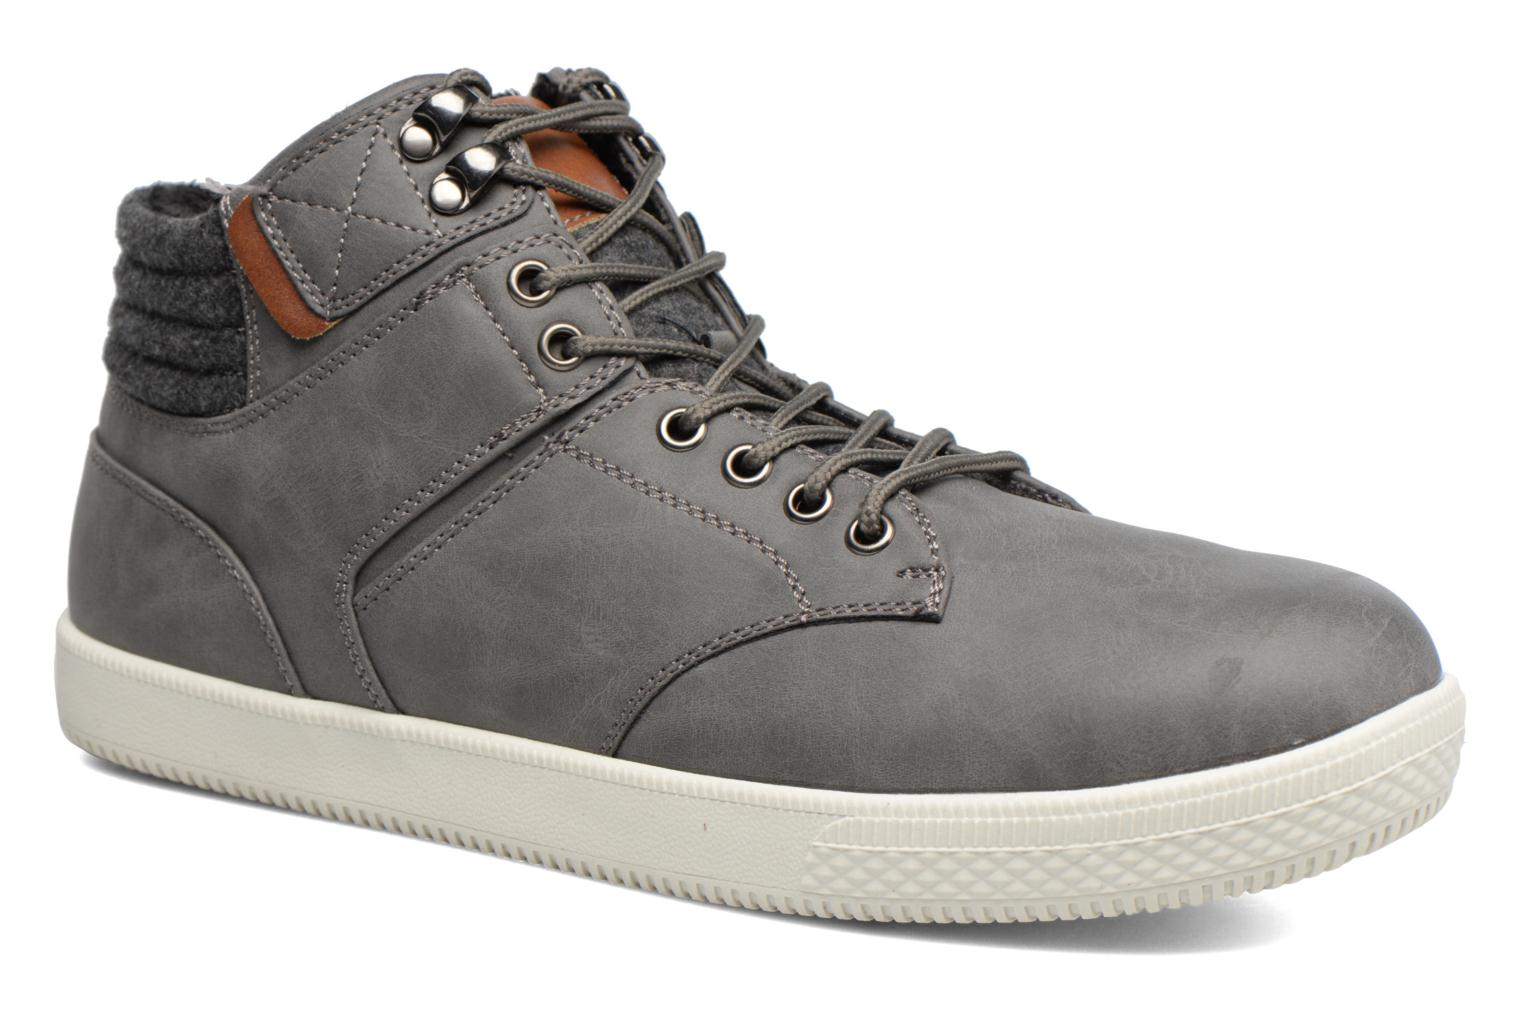 Marques Chaussure homme I Love Shoes homme SOANE Navy